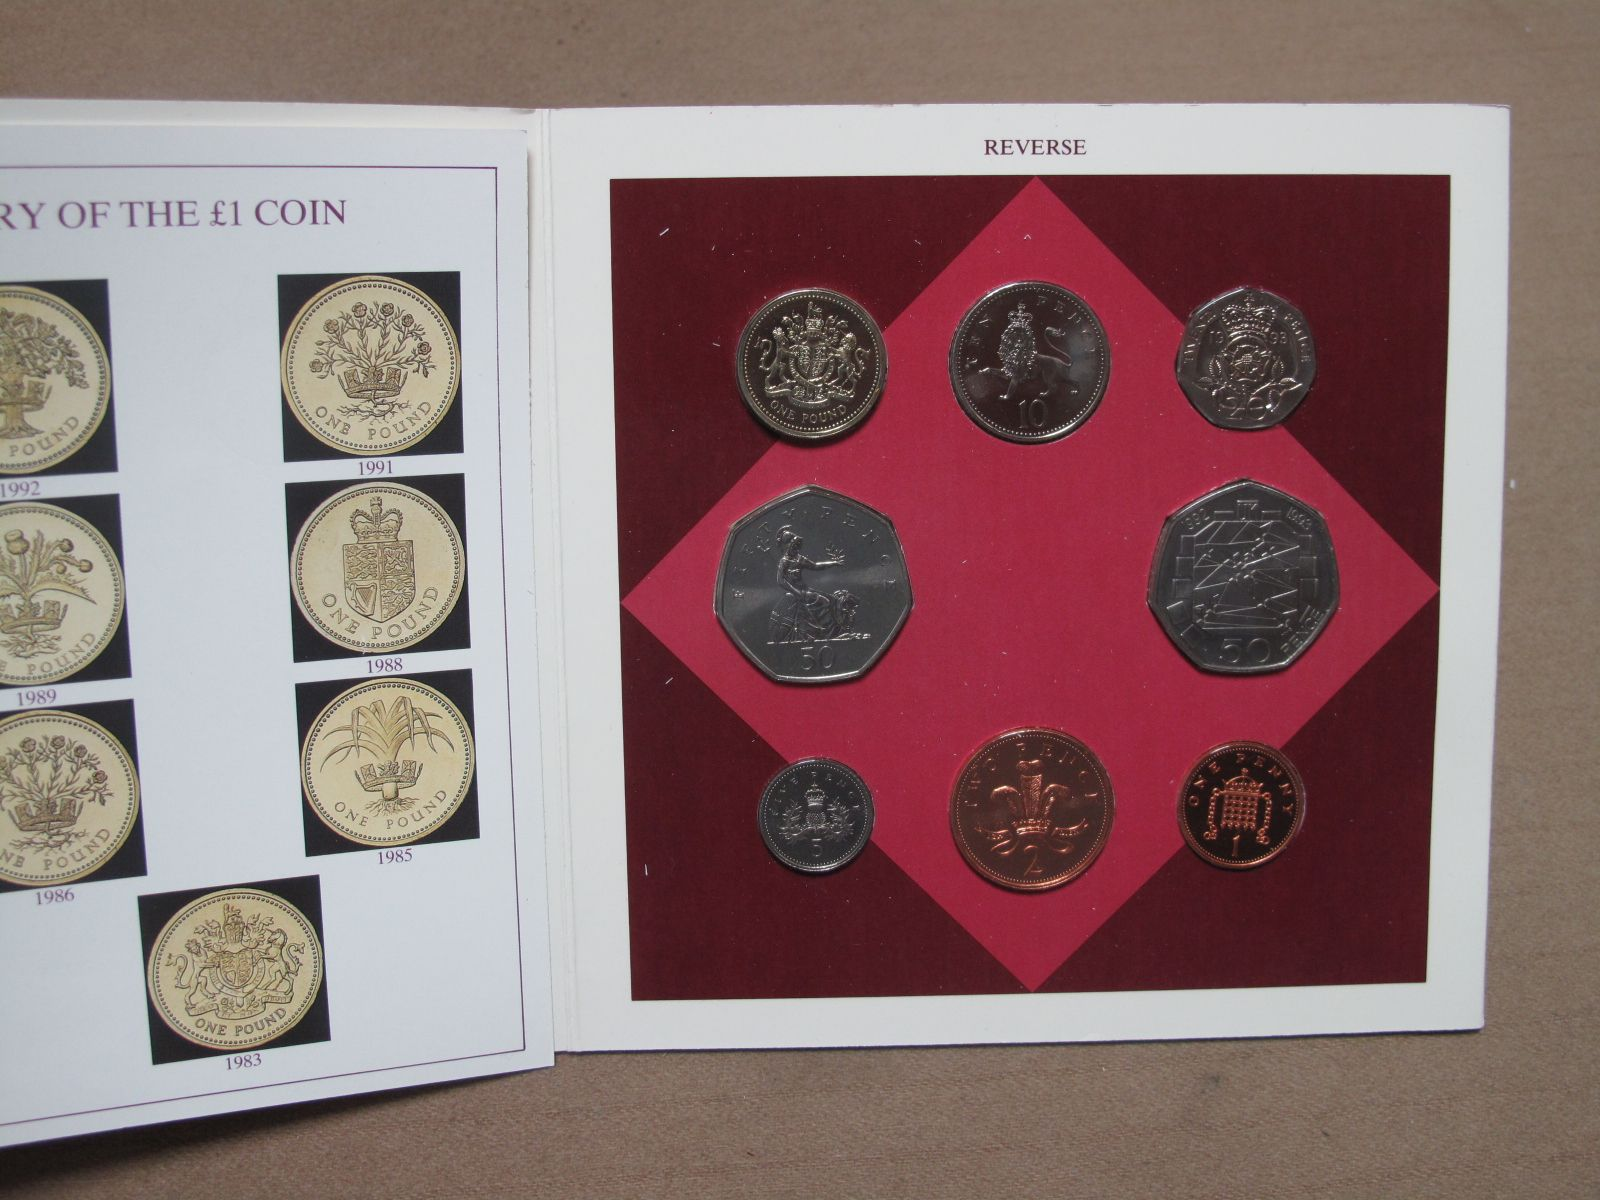 A 1993 Royal Mint Uncirculated Coin Collection, including 1992/1993 Dual Dated EEC 50p, sealed